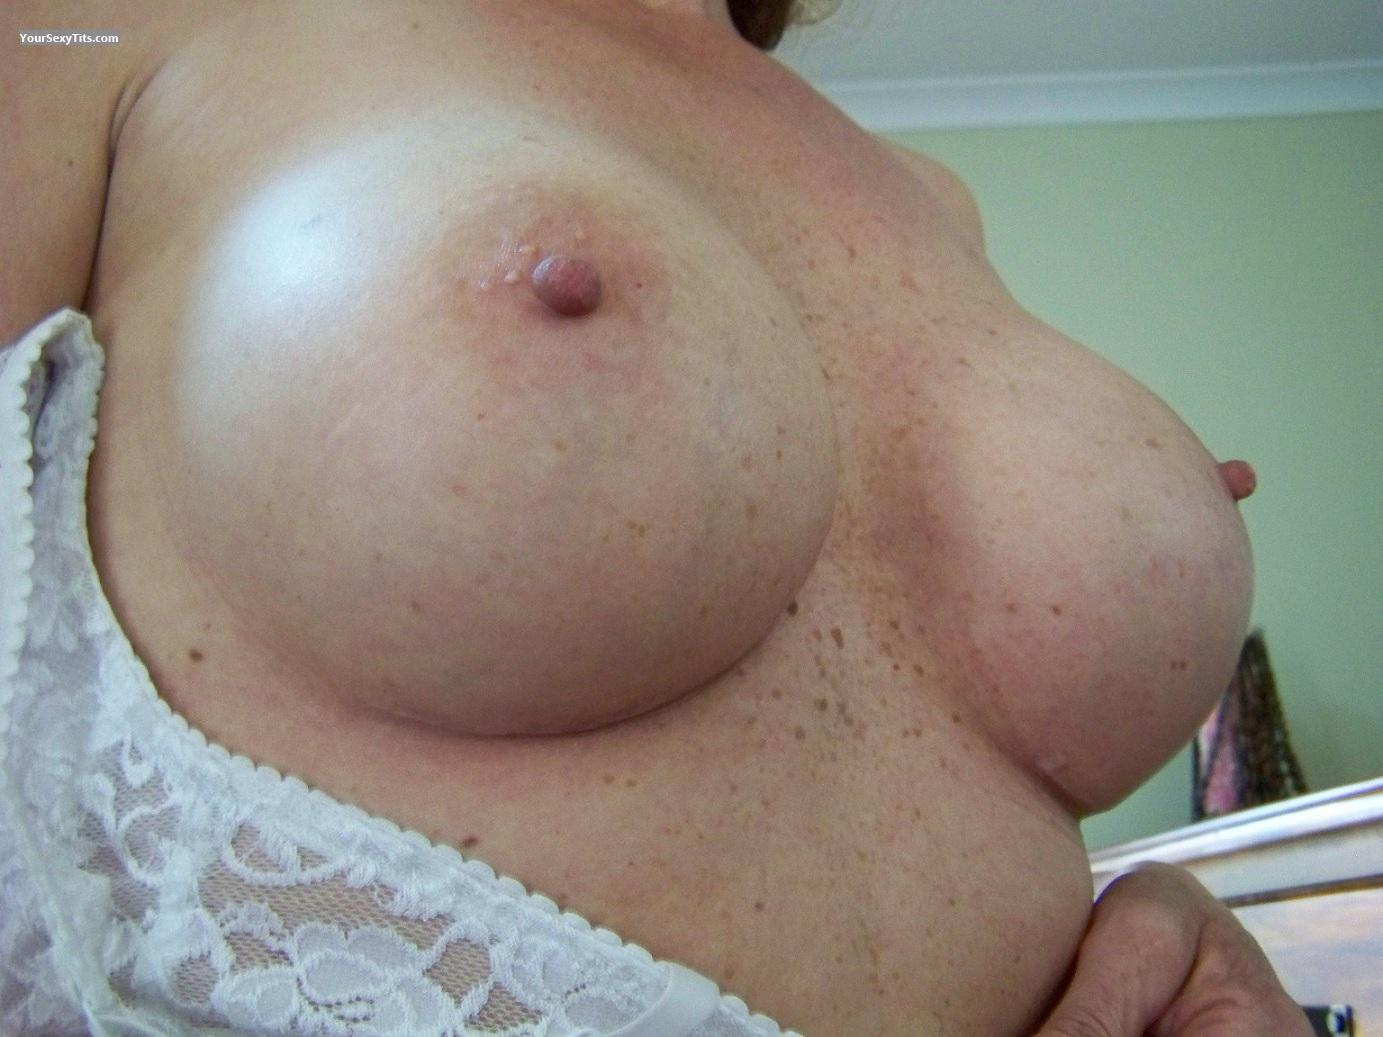 Tit Flash: Medium Tits - Chrissy from Australia